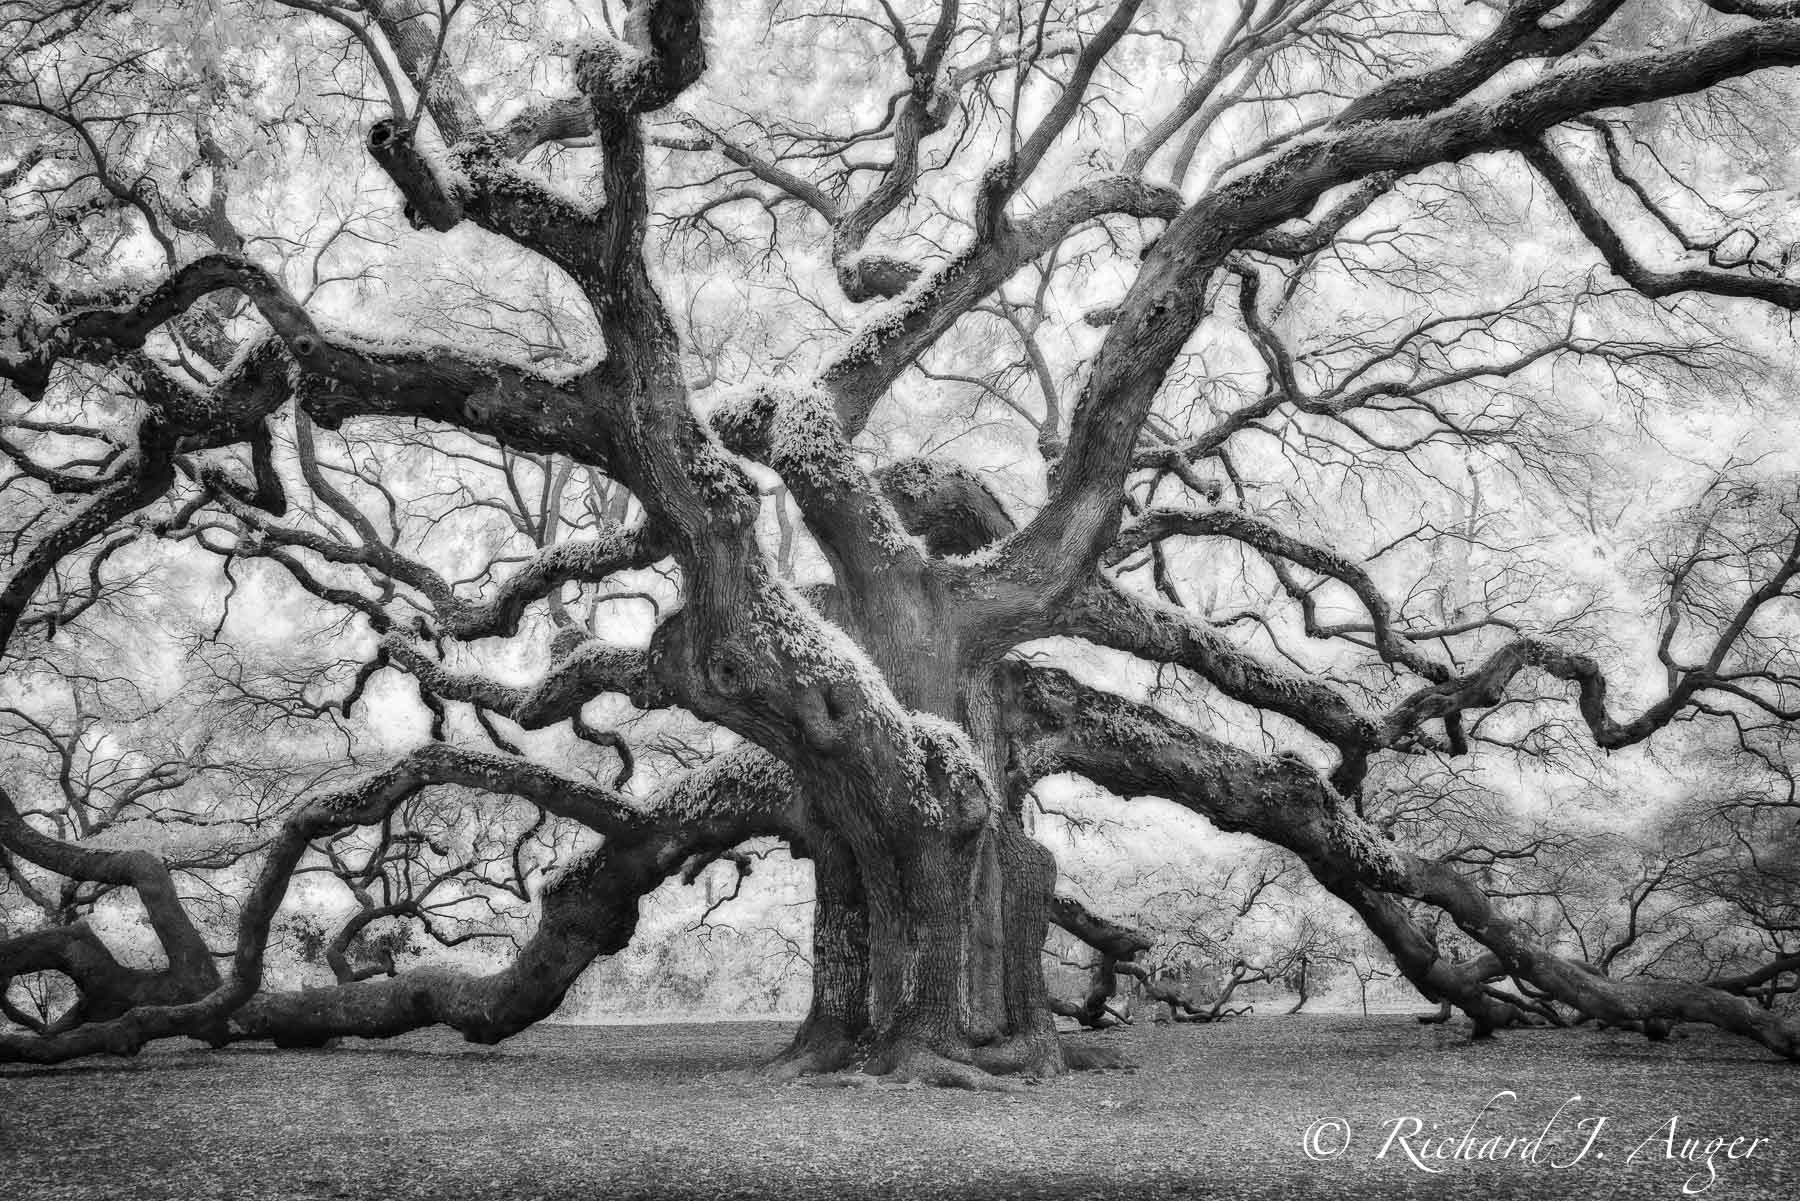 Angel Oak, South Carolina, Oak Tree, forest, black and white, photograph, nature